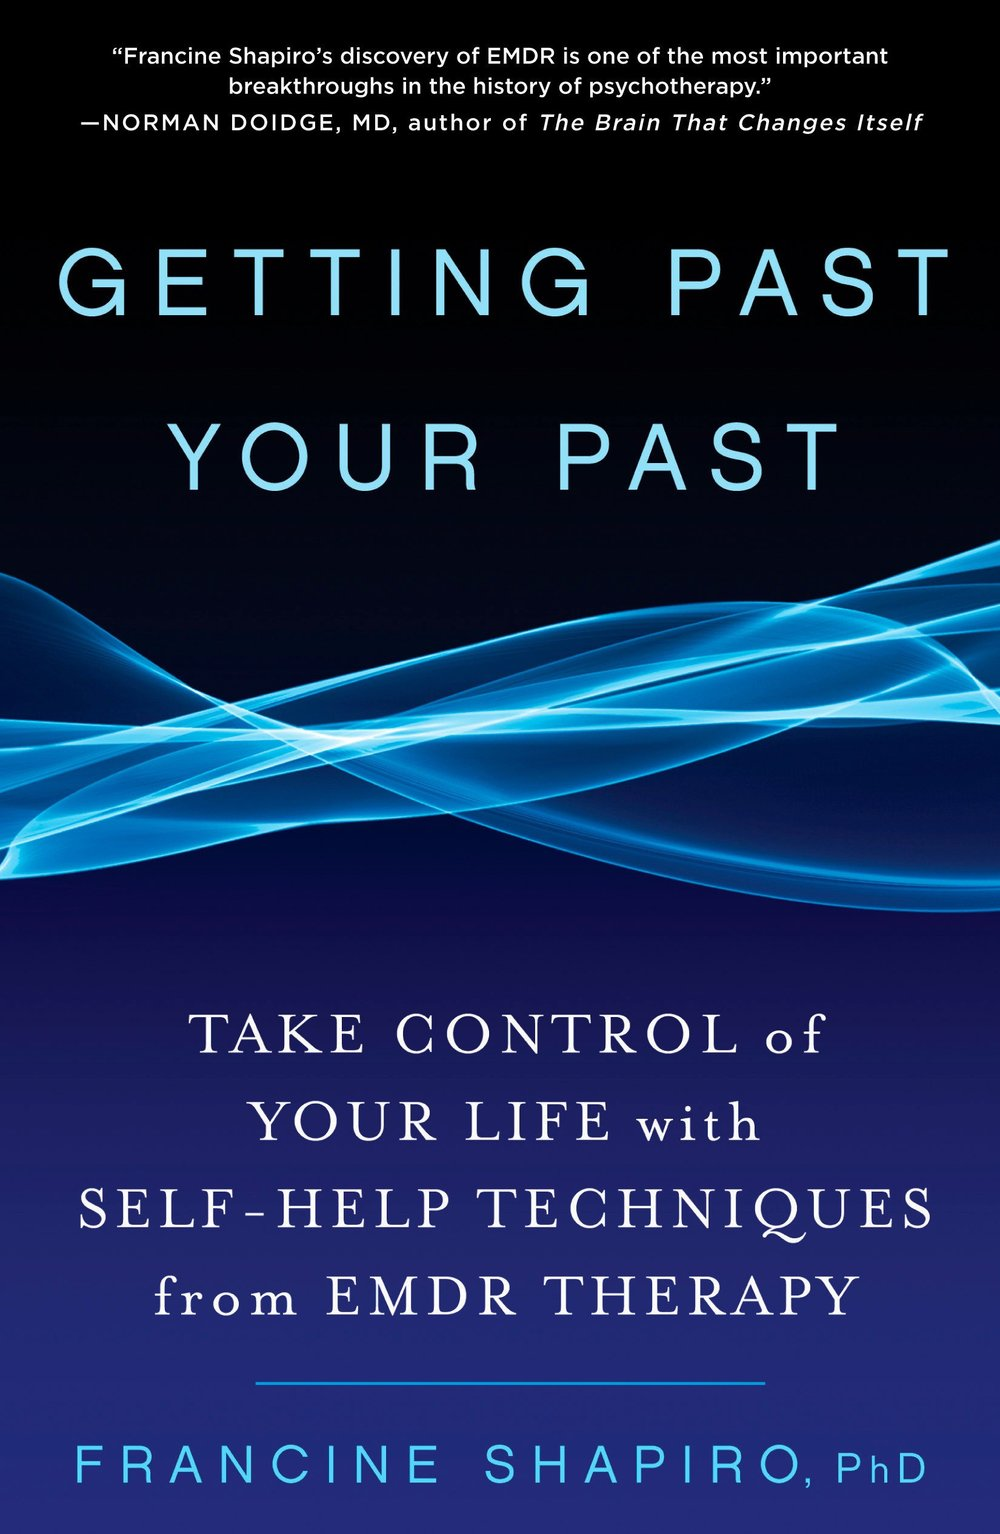 Getting Past Your Past Take Control of Your Life with Self-Help Techniques from EMDR Therapy.jpg